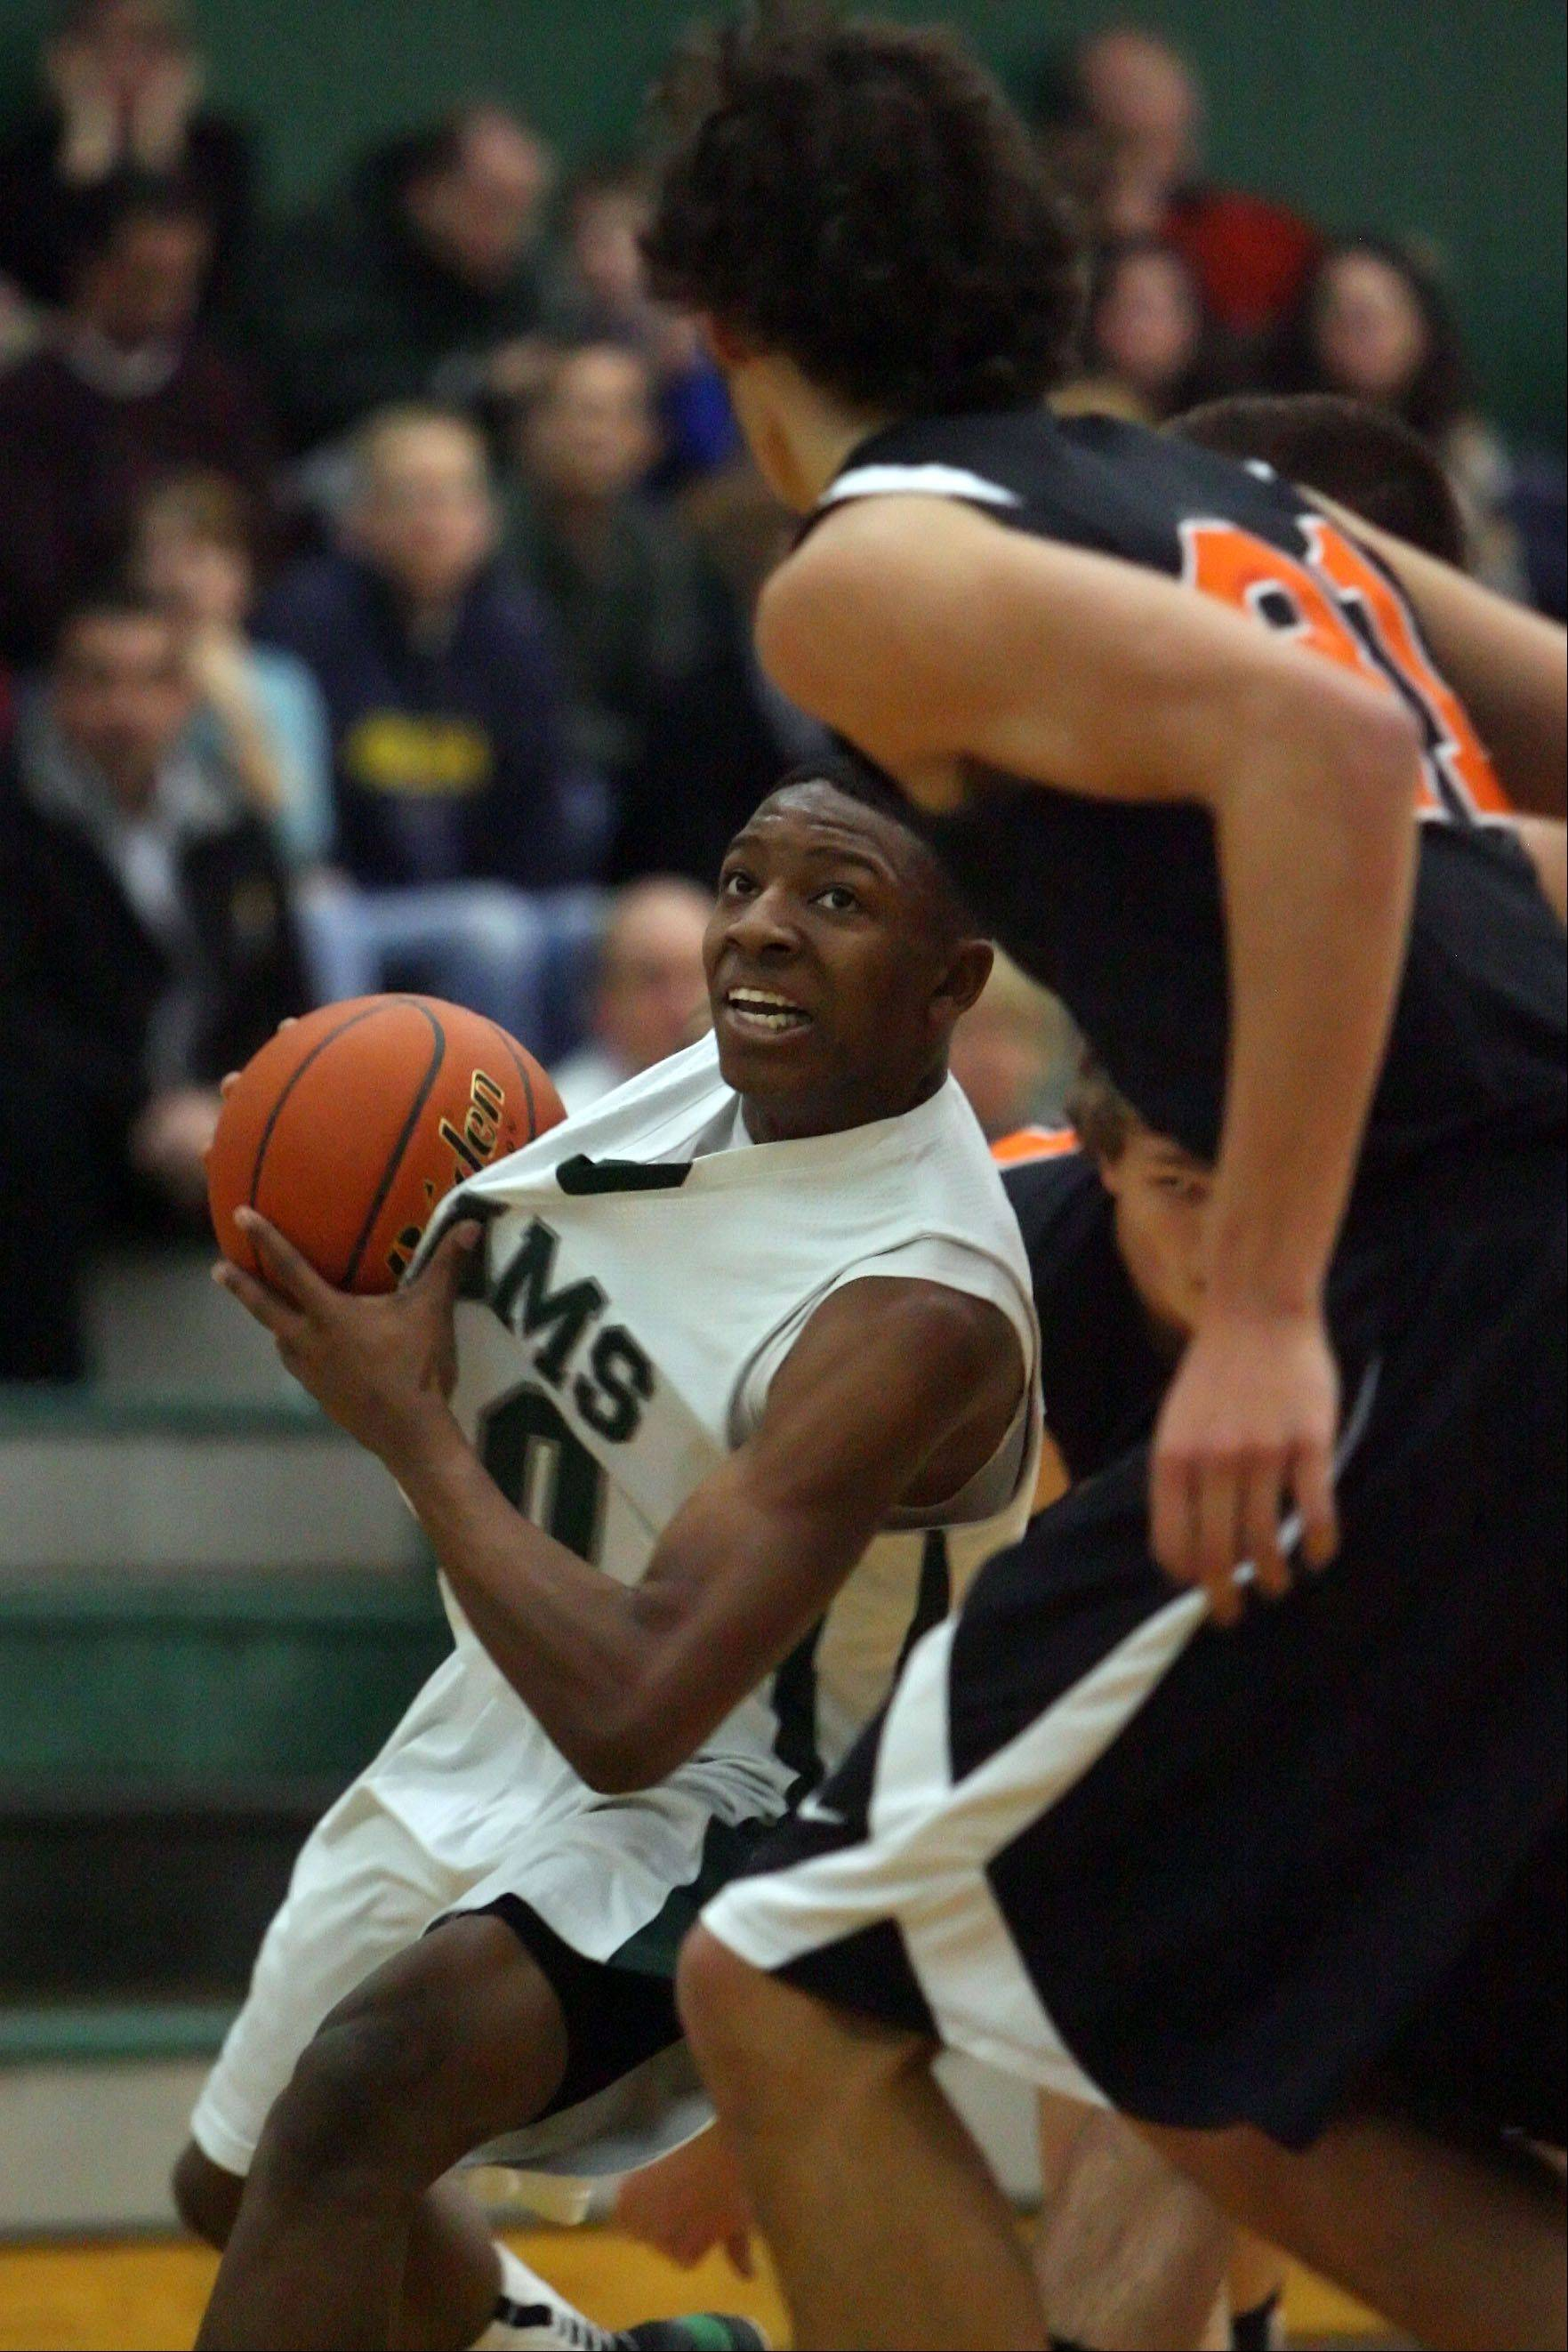 Images from the Crystal Lake Central at Grayslake Central boys basketball game Wednesday, Jan. 18.